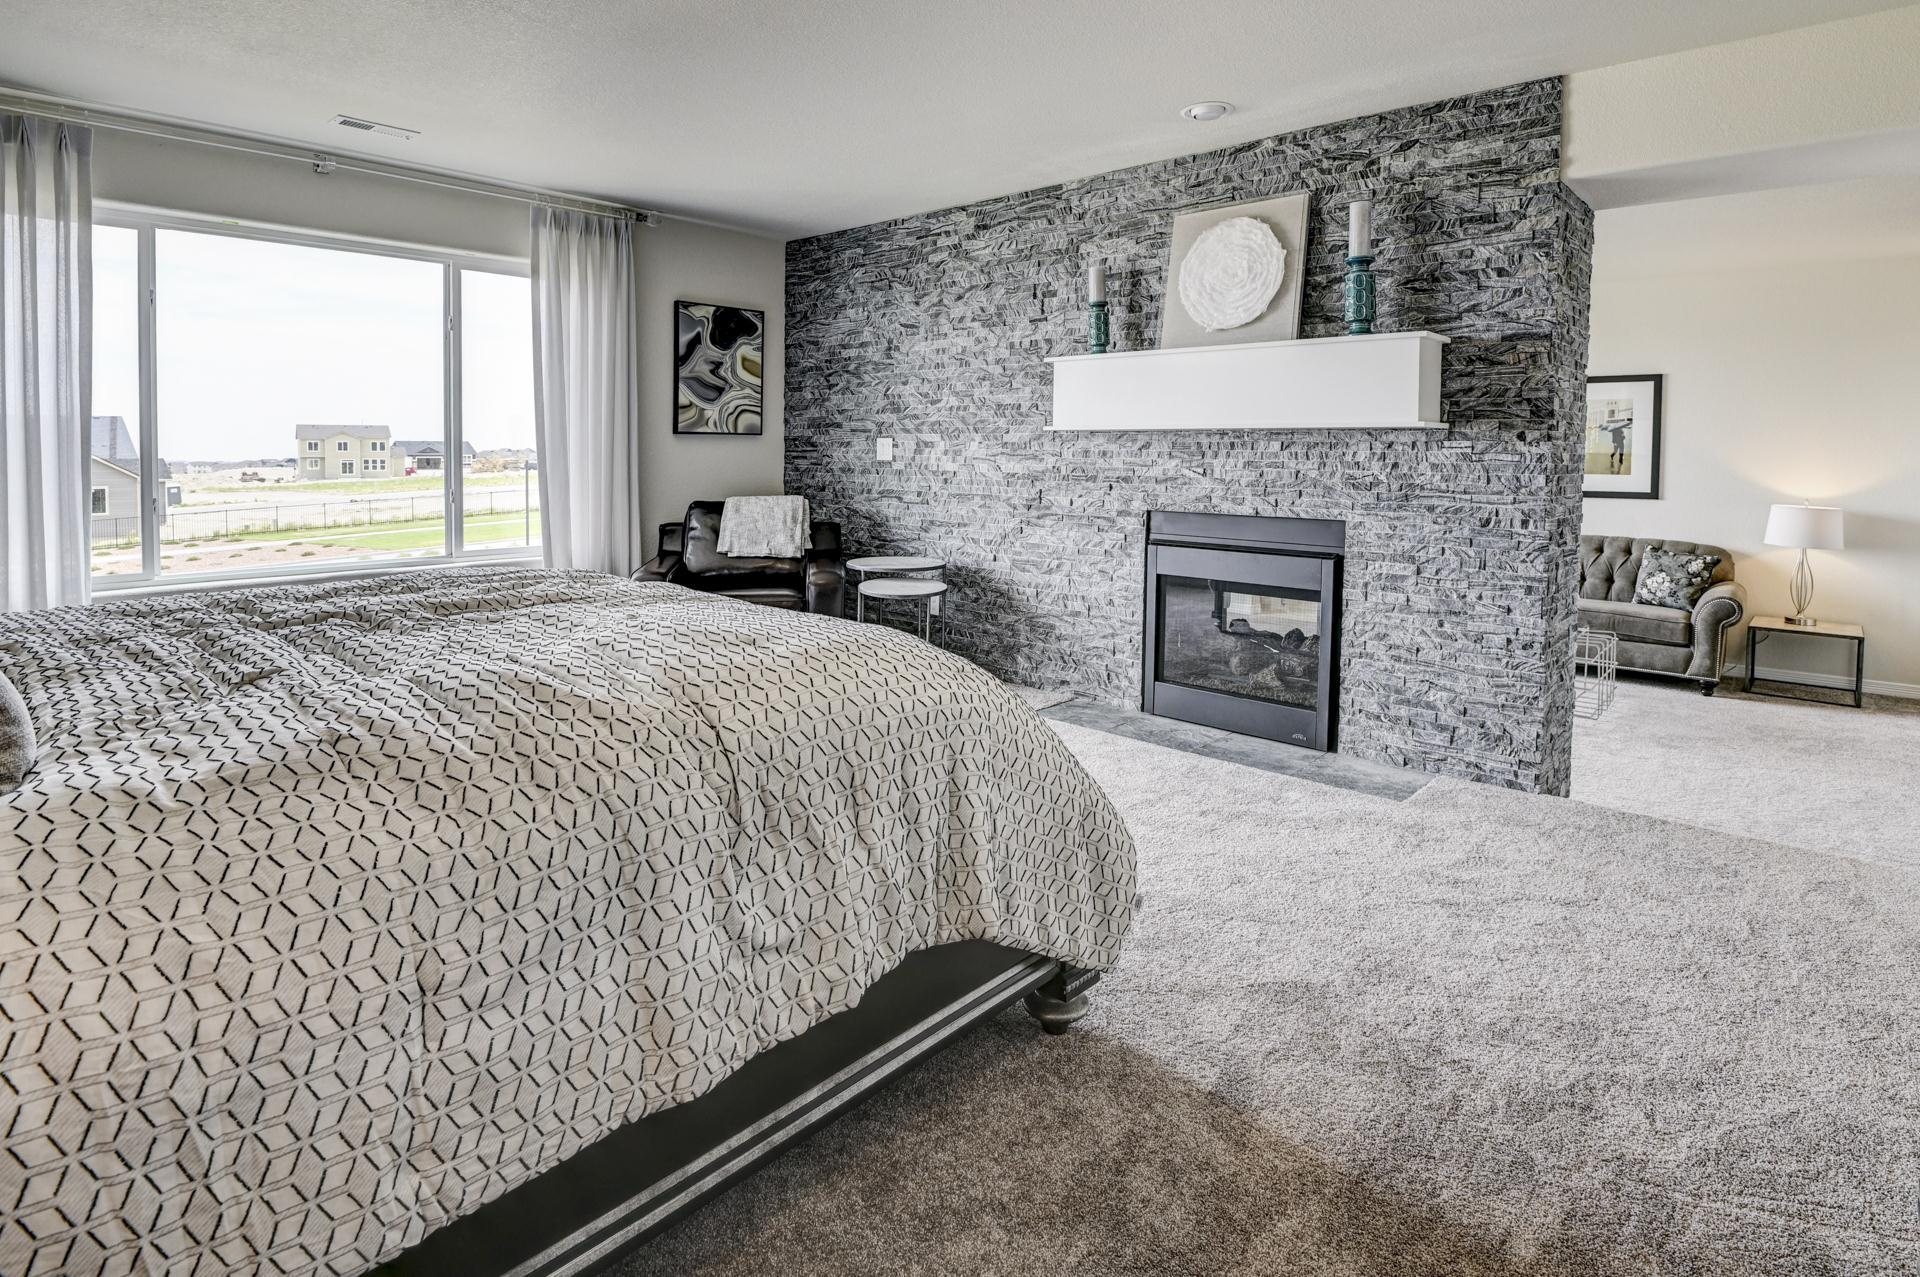 Bedroom featured in the Sunlight Peak (Finished Basement) By Reunion Homes in Colorado Springs, CO